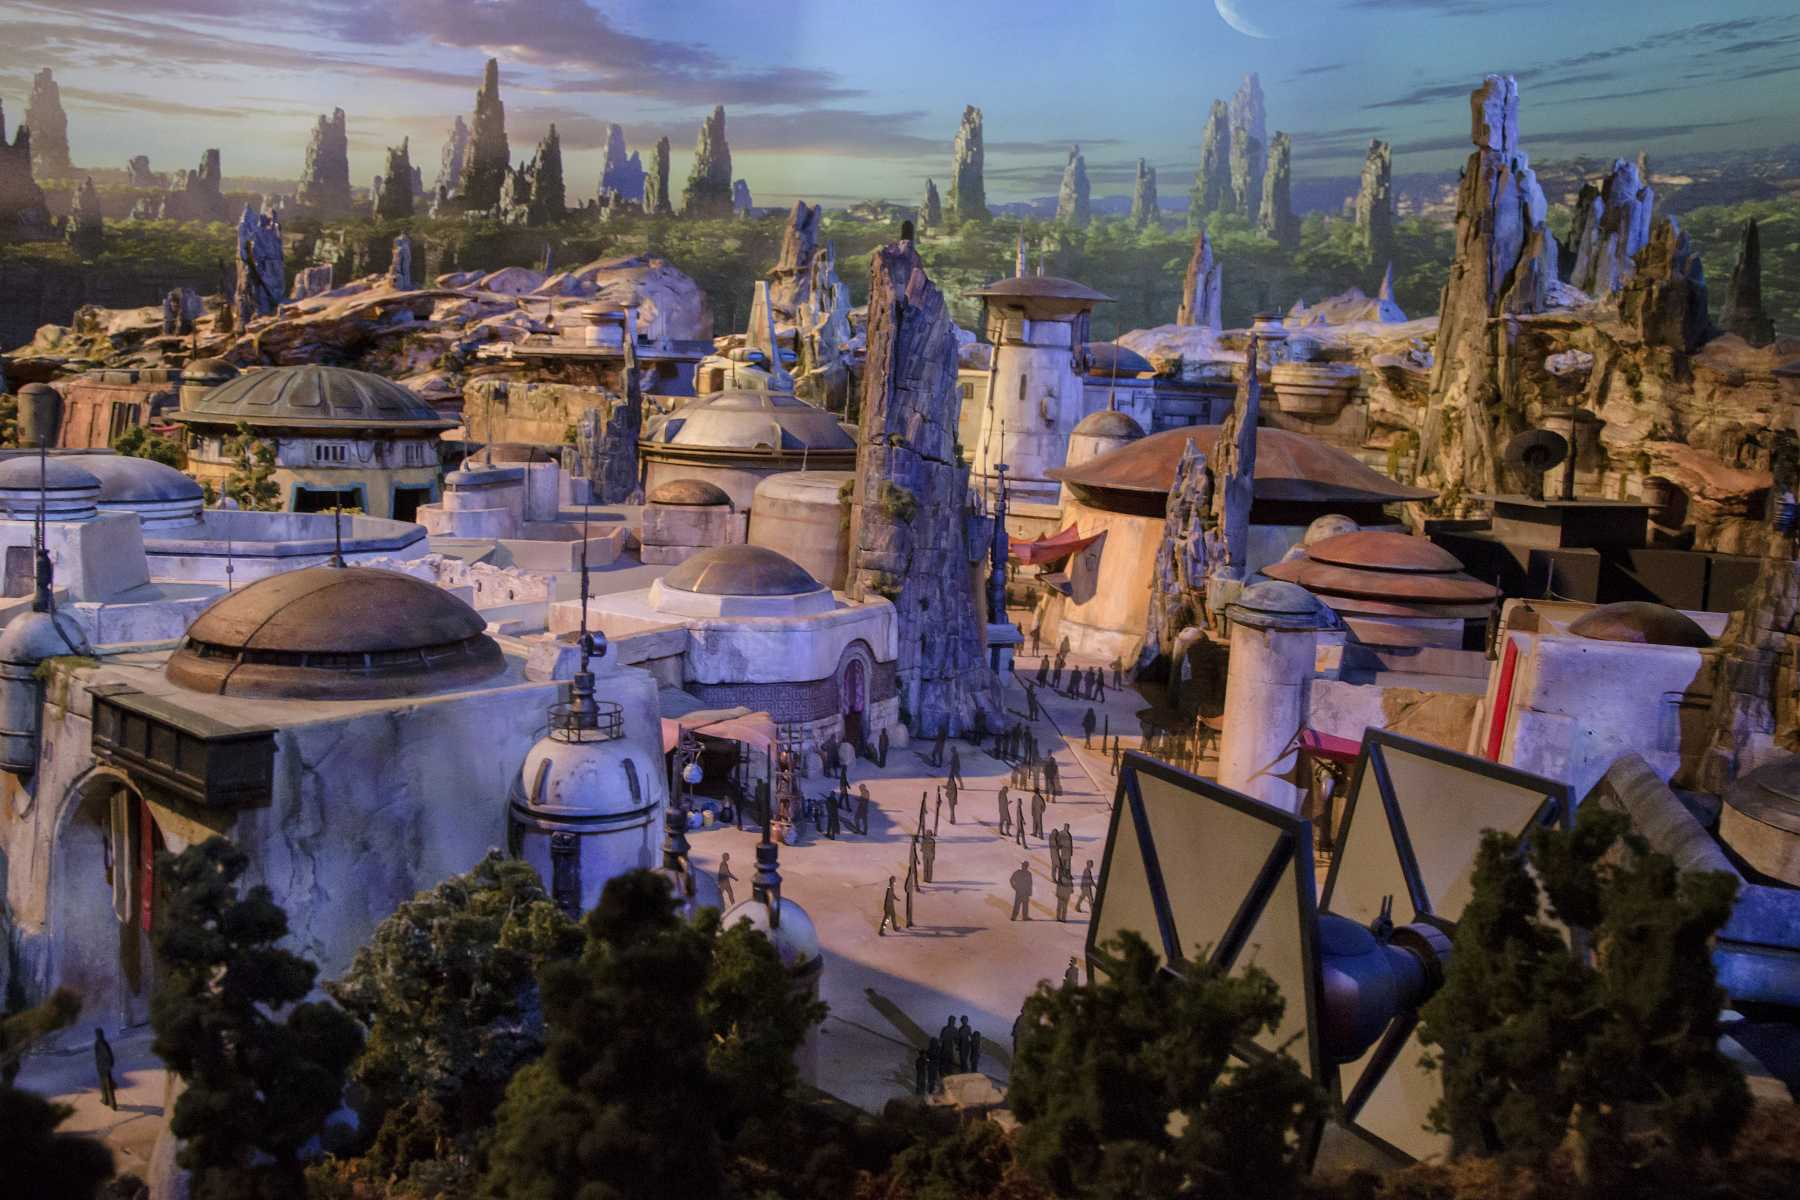 Detailed Model Of Star Wars-Themed Lands Revealed By Bob Chapek At D23 Expo | Star Wars